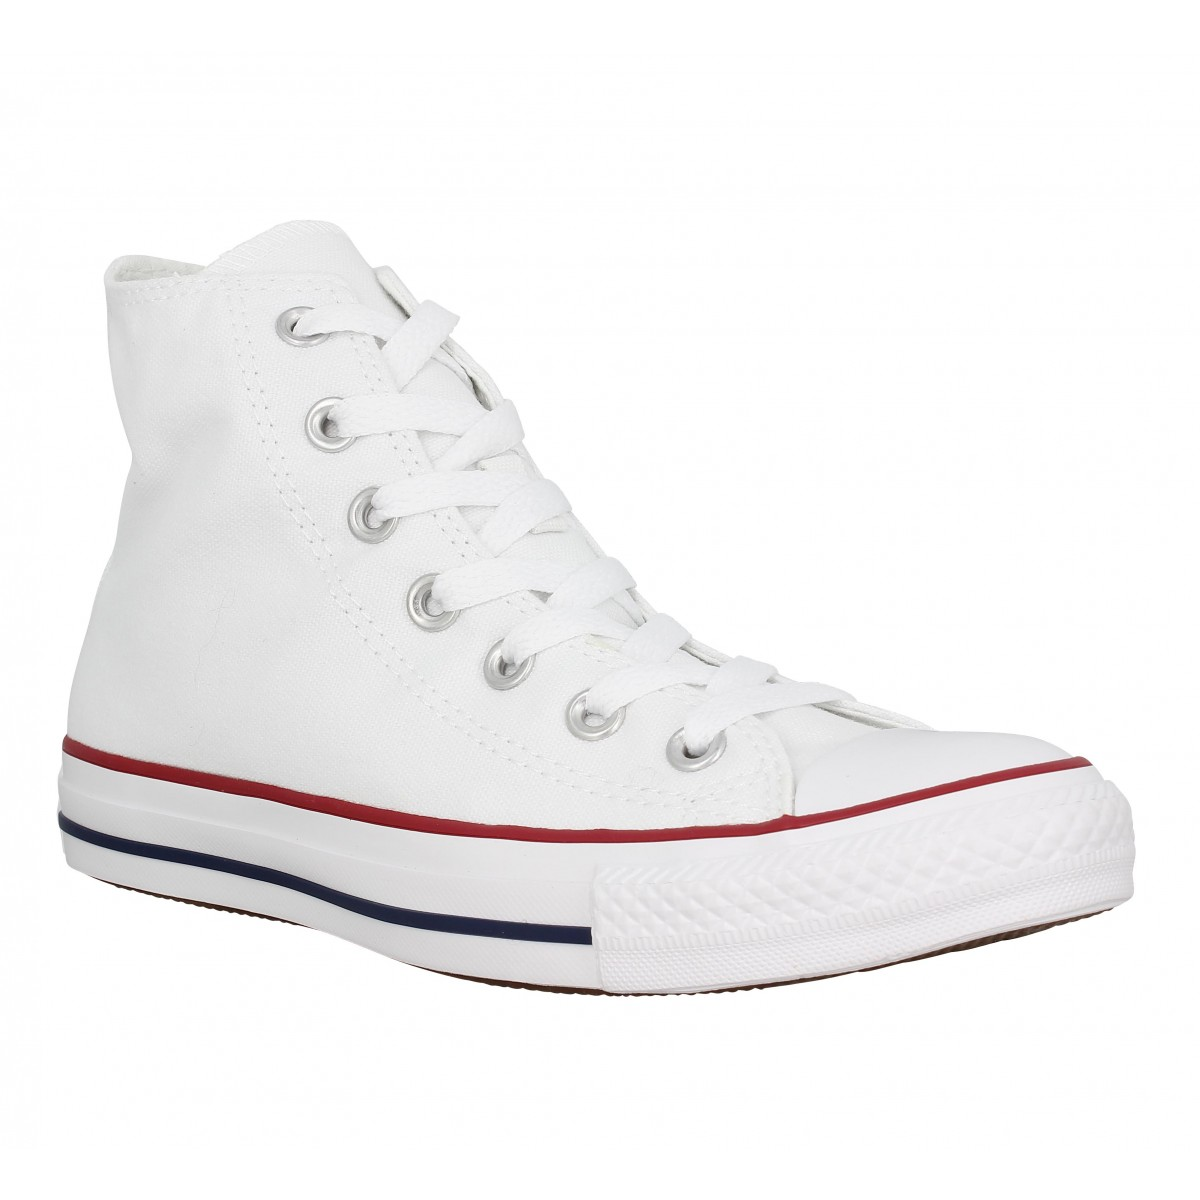 Baskets CONVERSE Chuck Taylor All Star Hi toile Homme Blanc